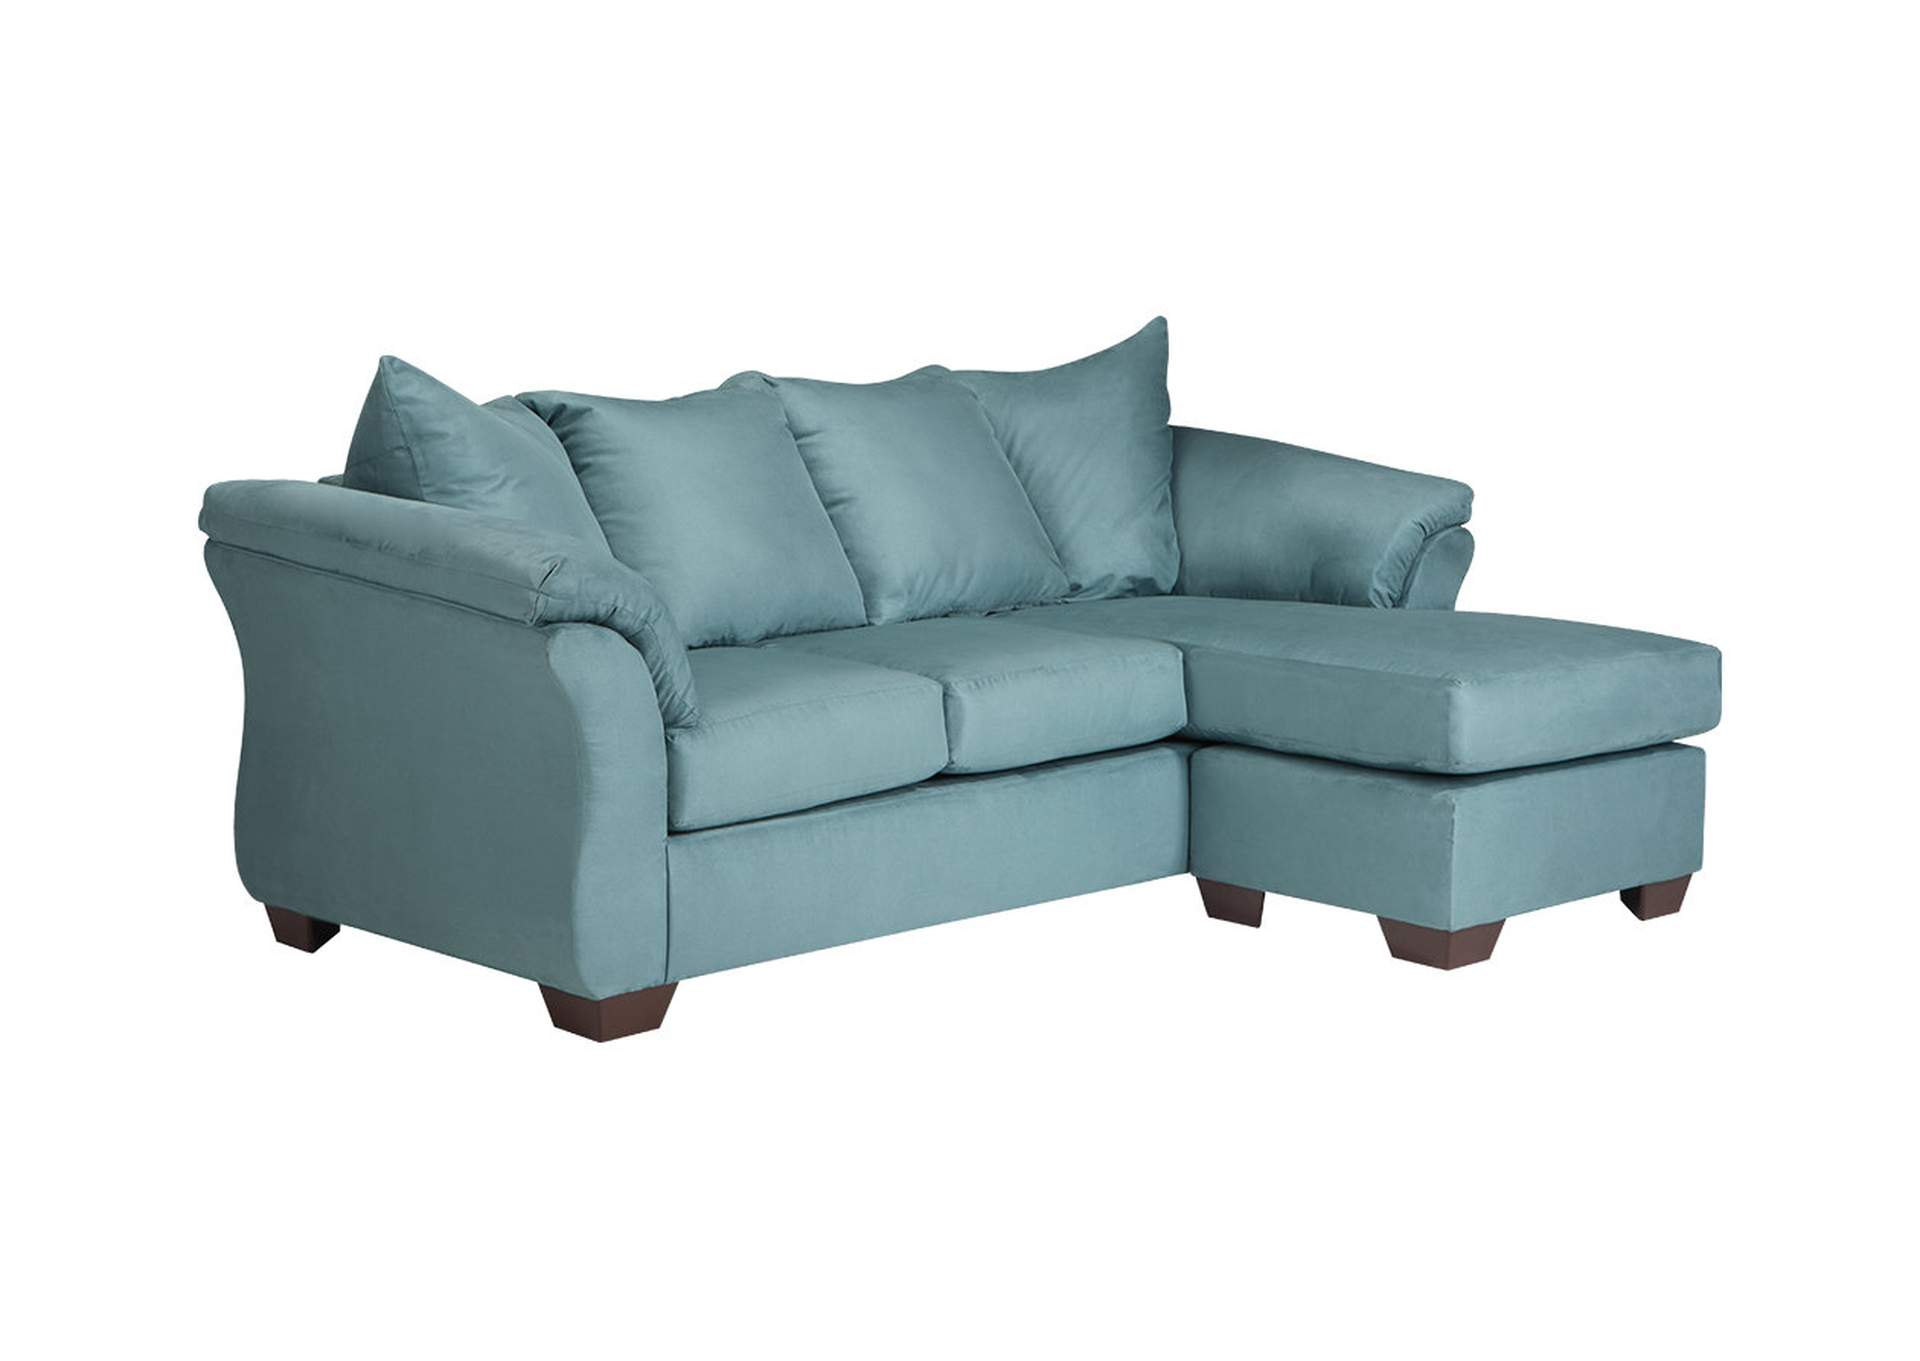 Darcy Sky Sofa Chaise The Furniture Shop Duncanville Tx